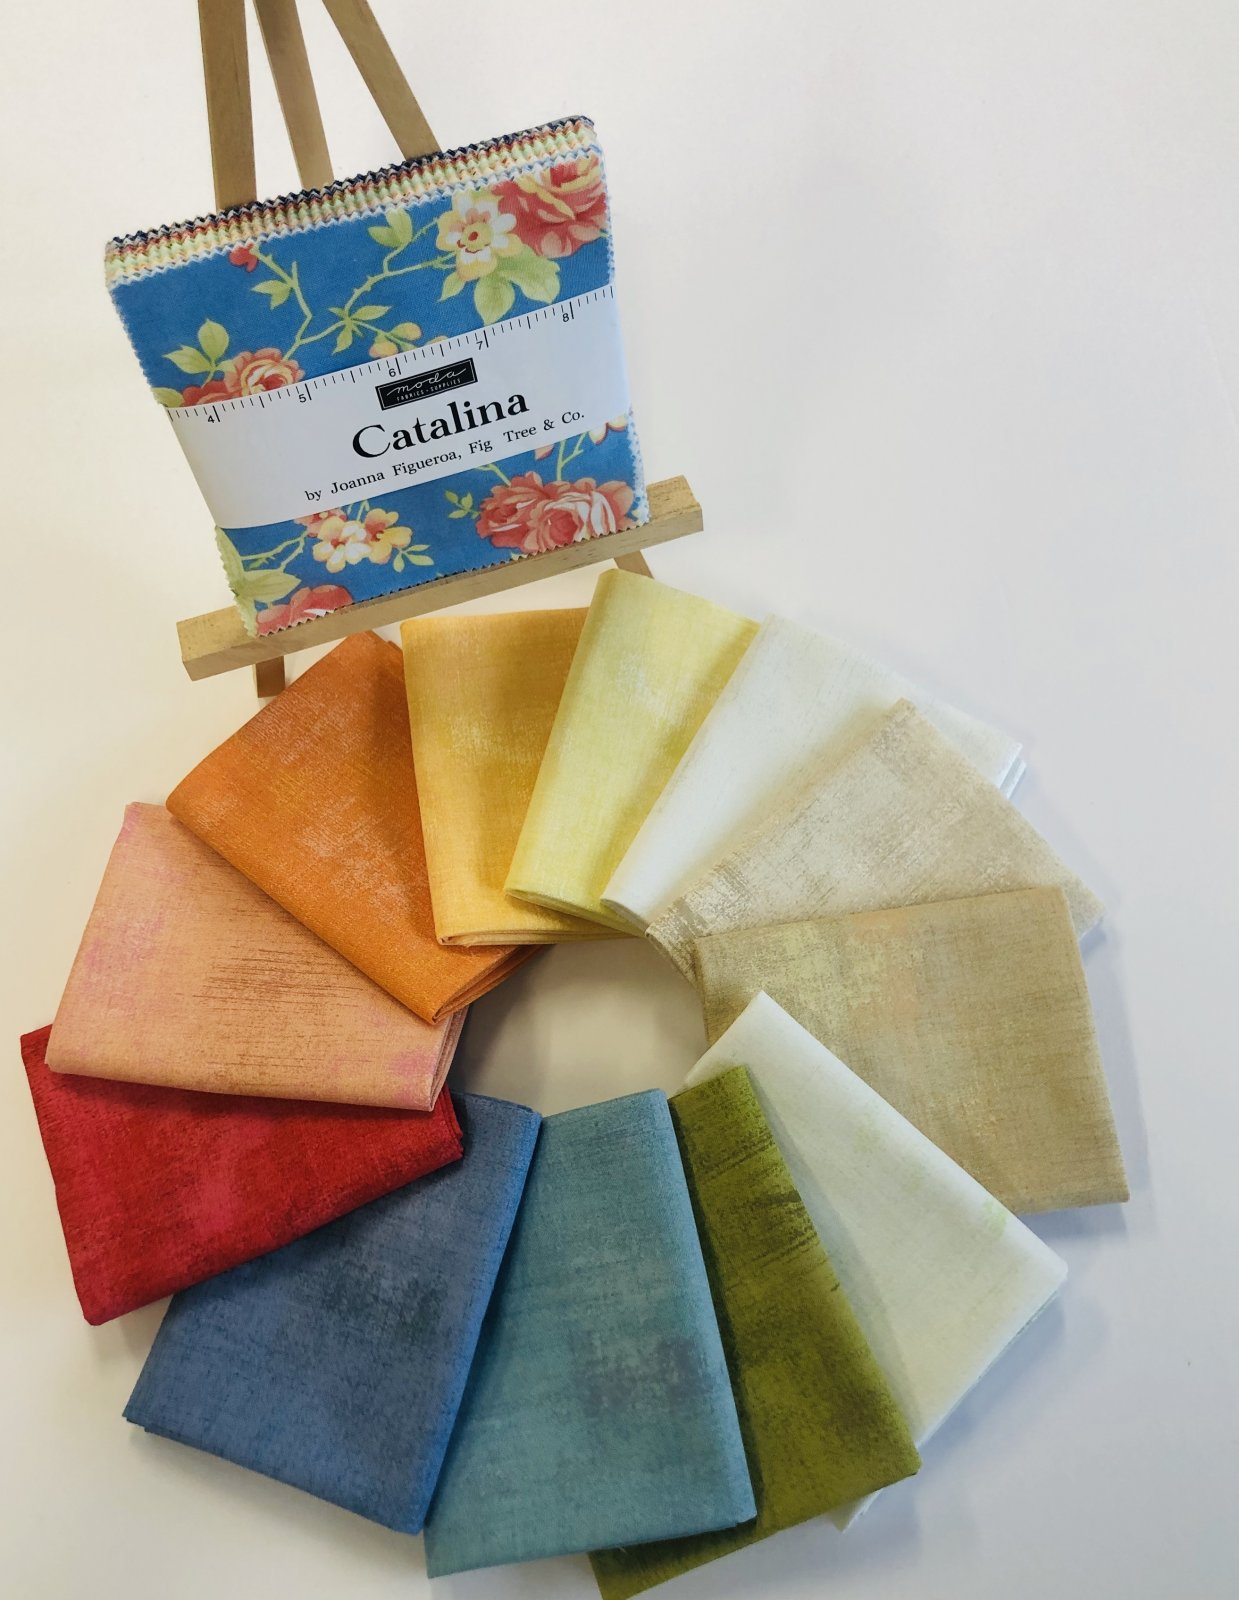 Grunge Fat Quarters to go with Catalina